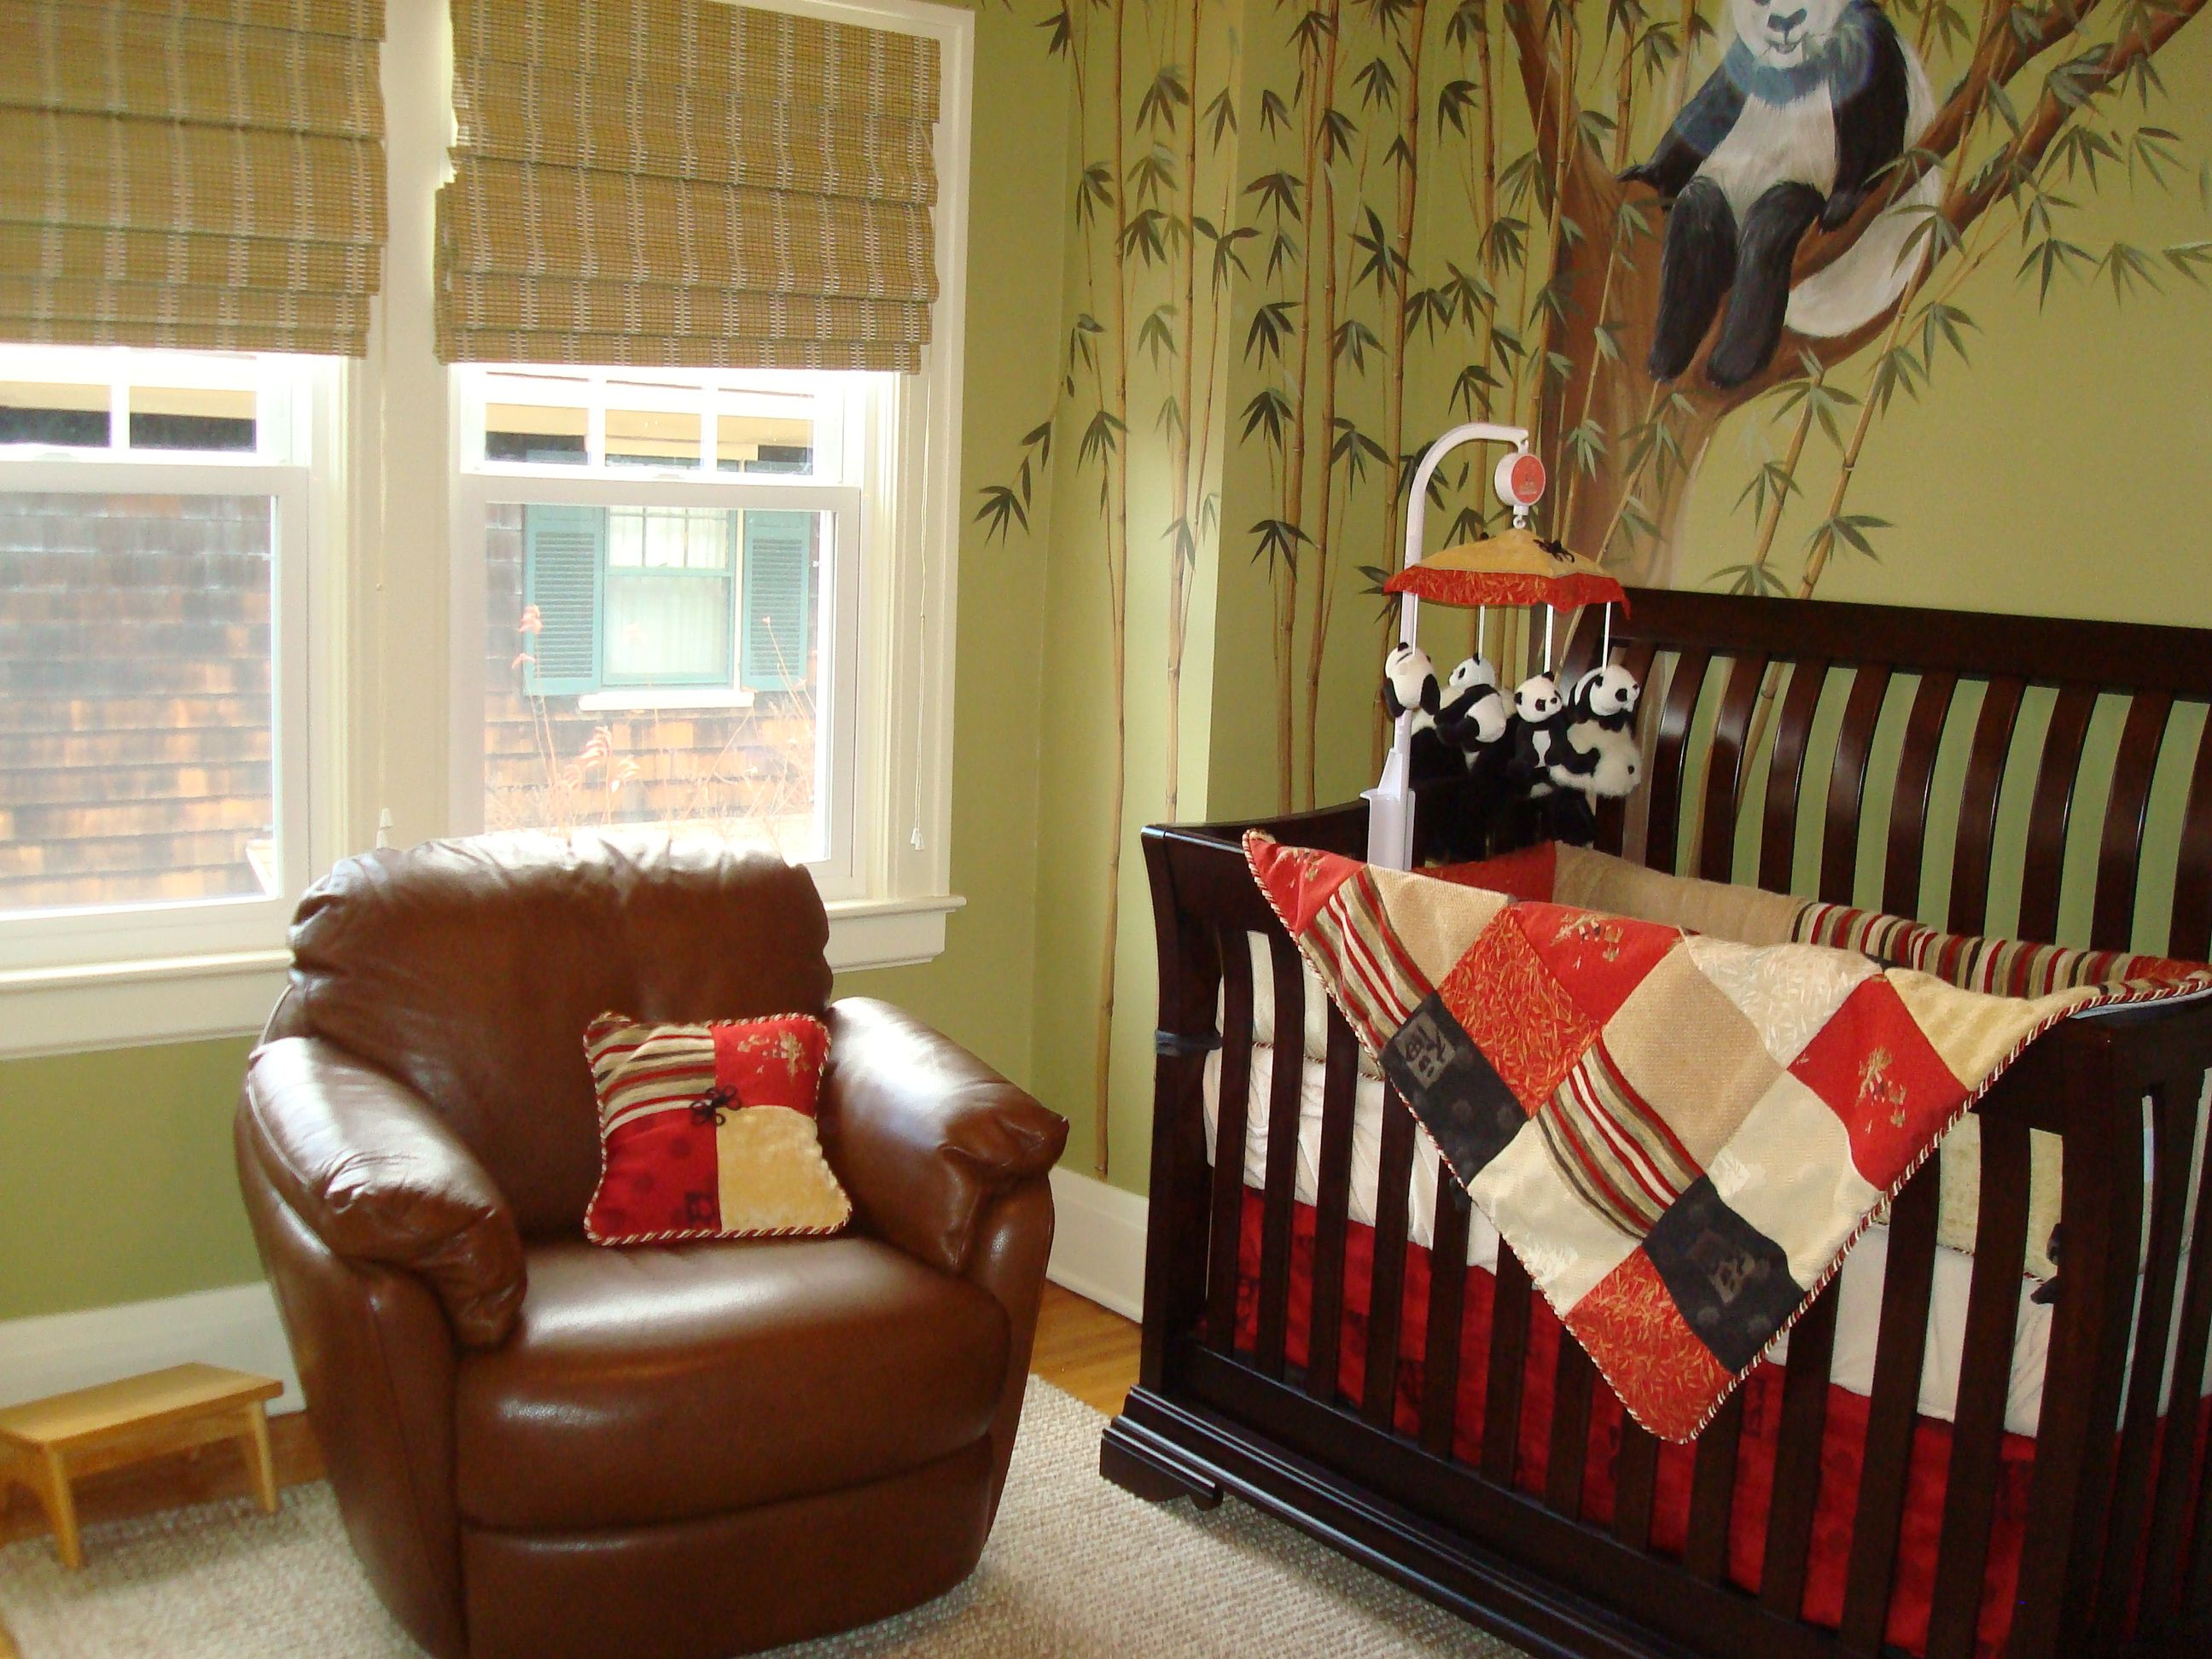 Asian Panda Bear Themed Nursery Hand Painted Bears And Bamboo Grace This Sophisticated Rich Wood Tones Reds Soft Greens Make